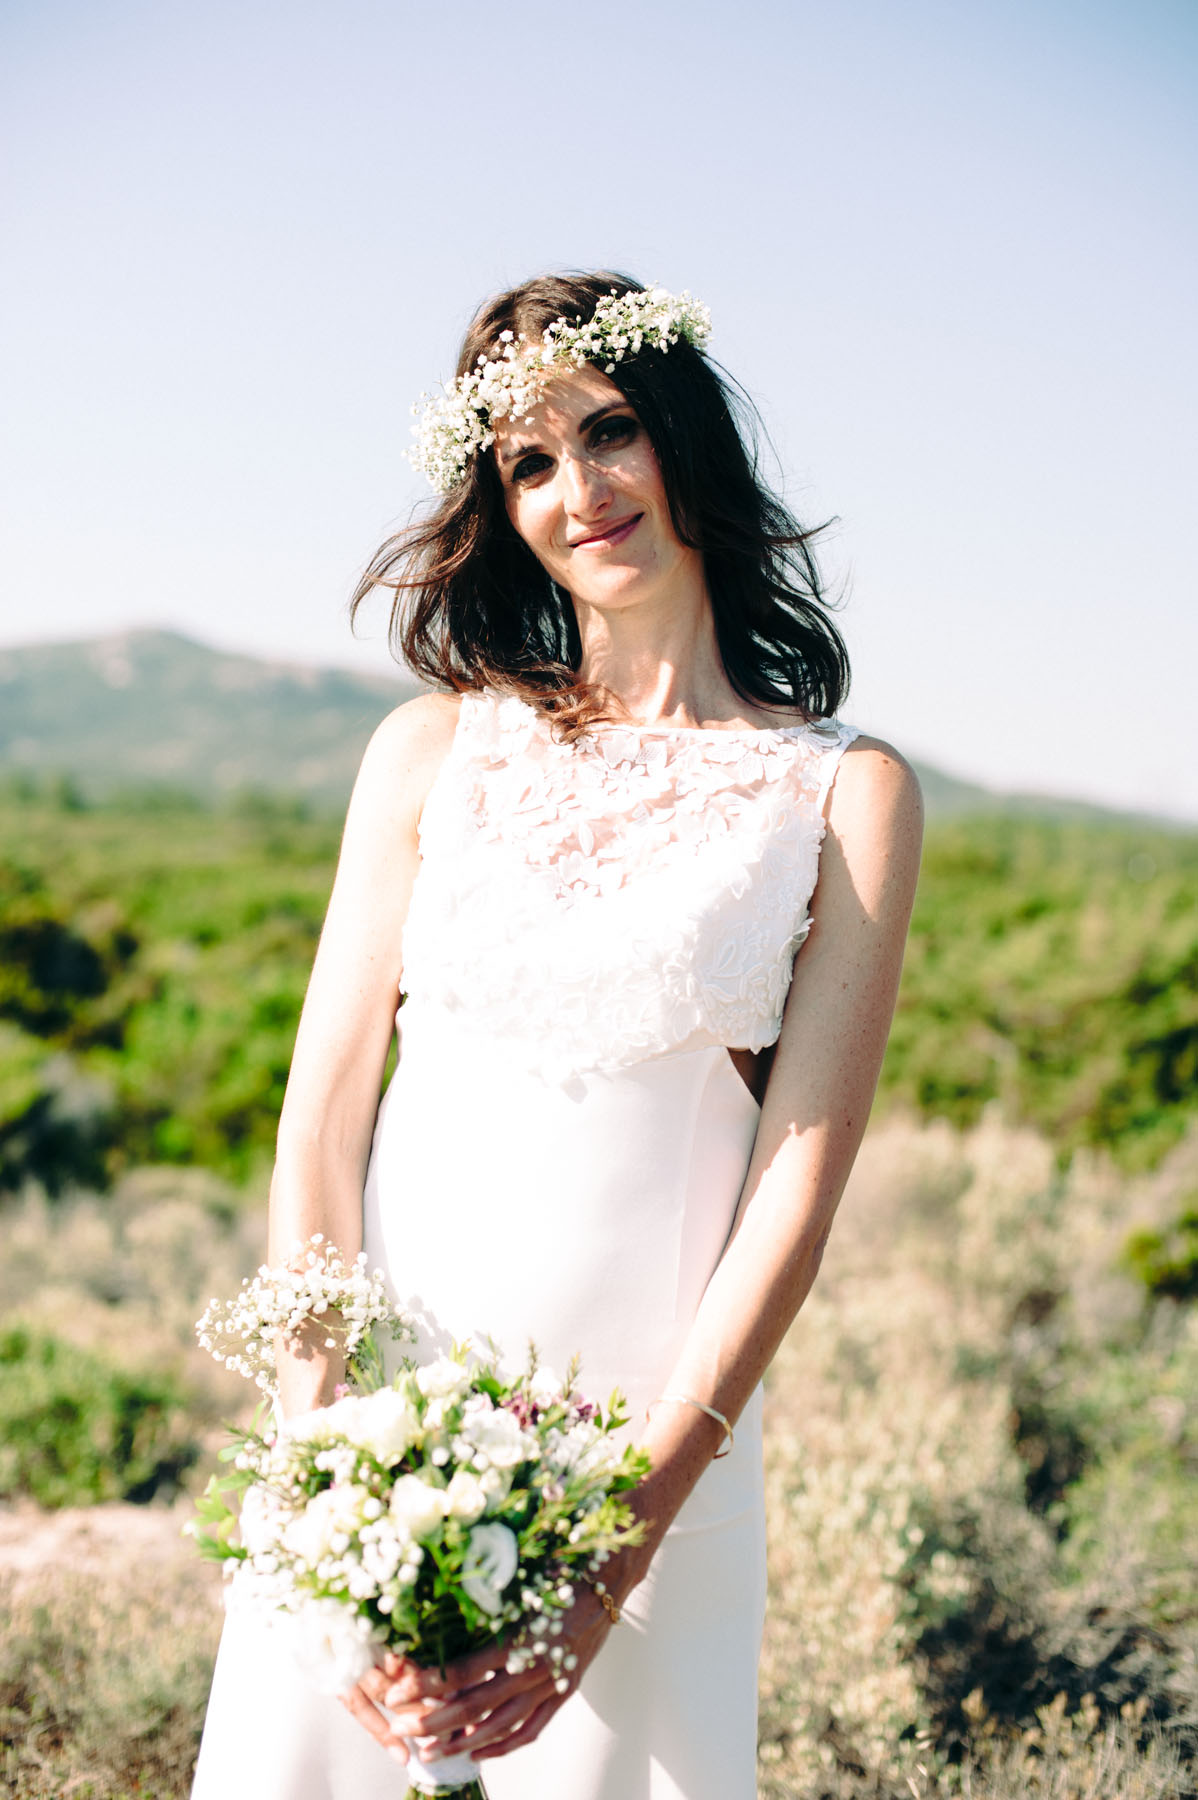 Photographe mariage montpellier corse - Mademoiselle G photographie (135)